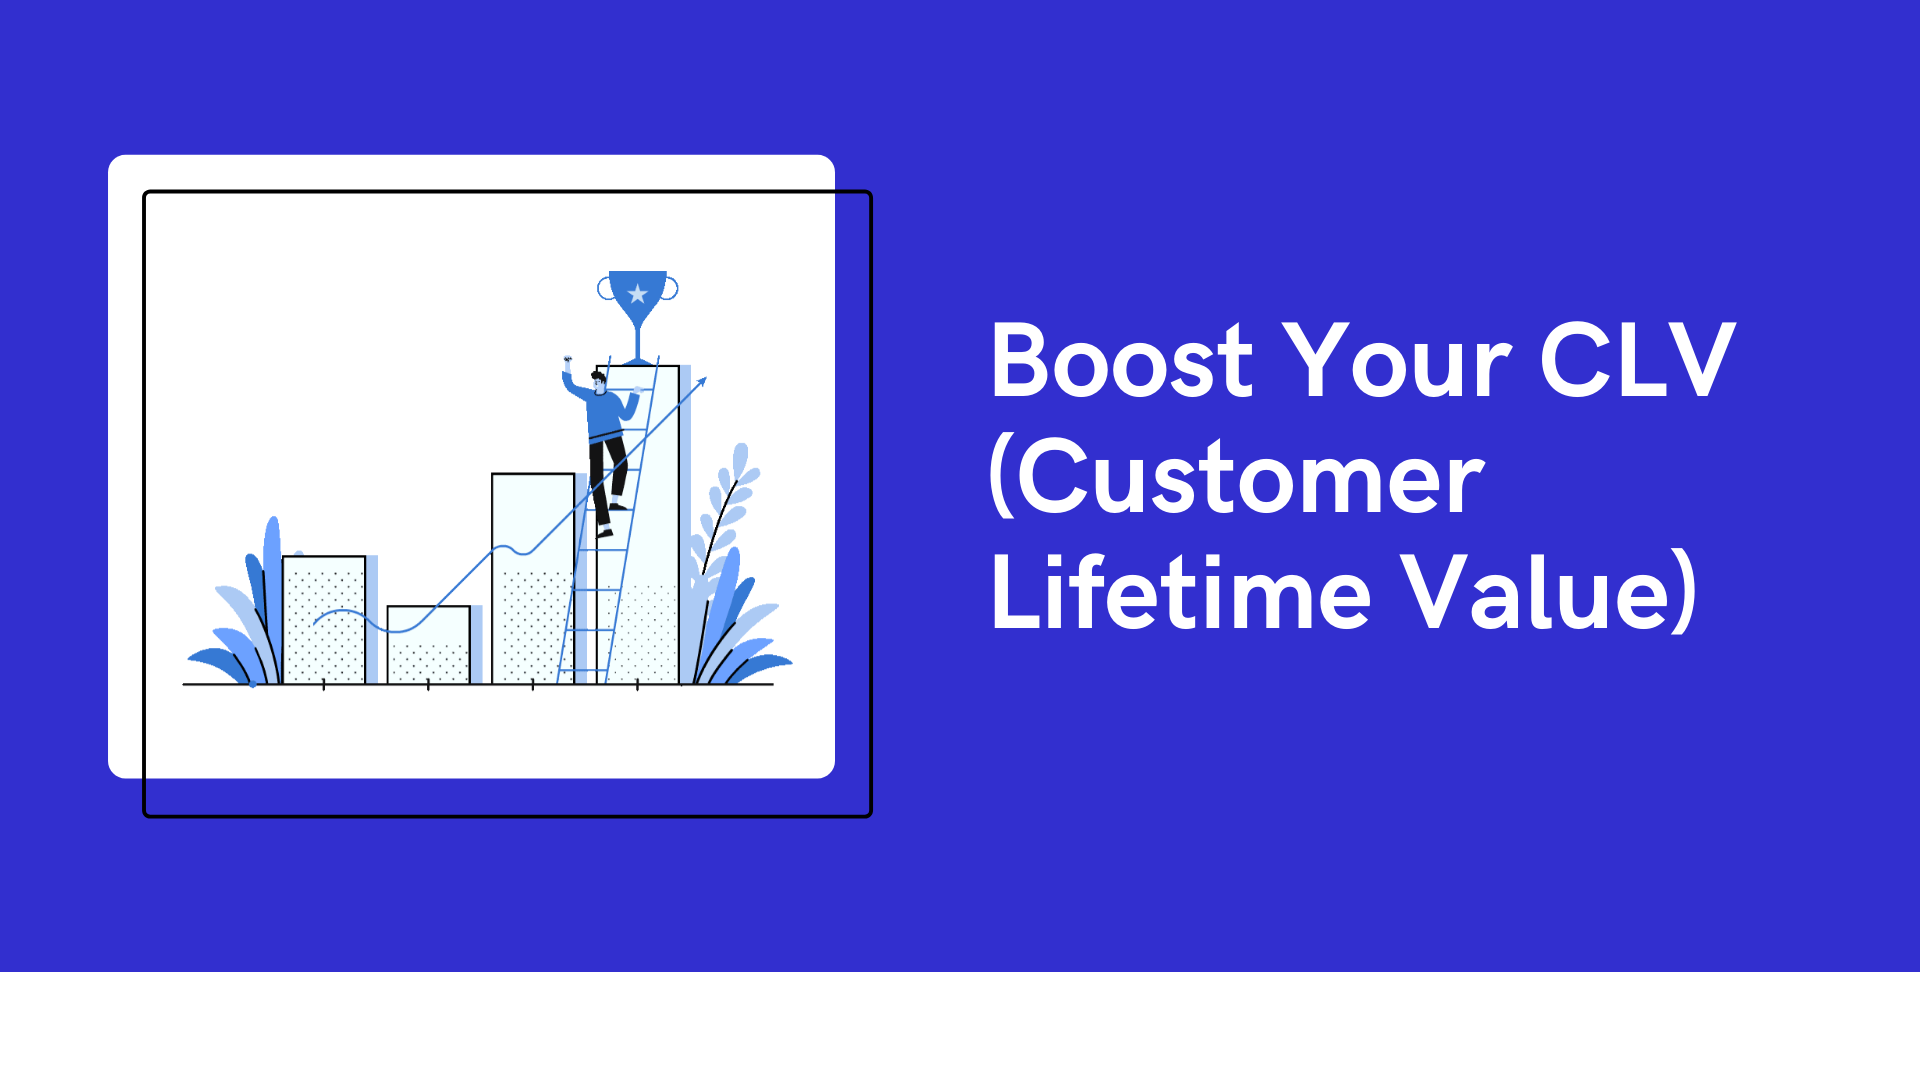 Boost Your CLV (Customer Lifetime Value)